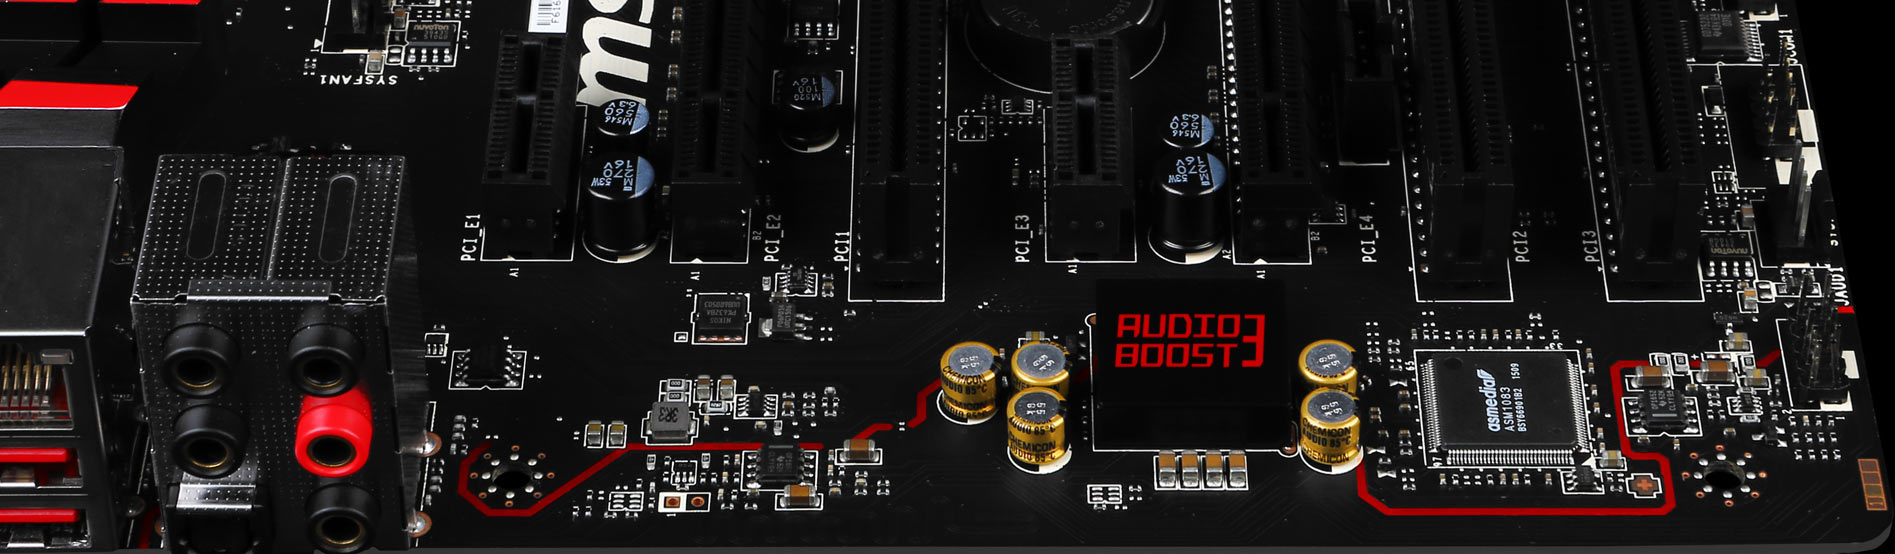 How To Reset Cmos Msi Motherboard ••▷ SFB